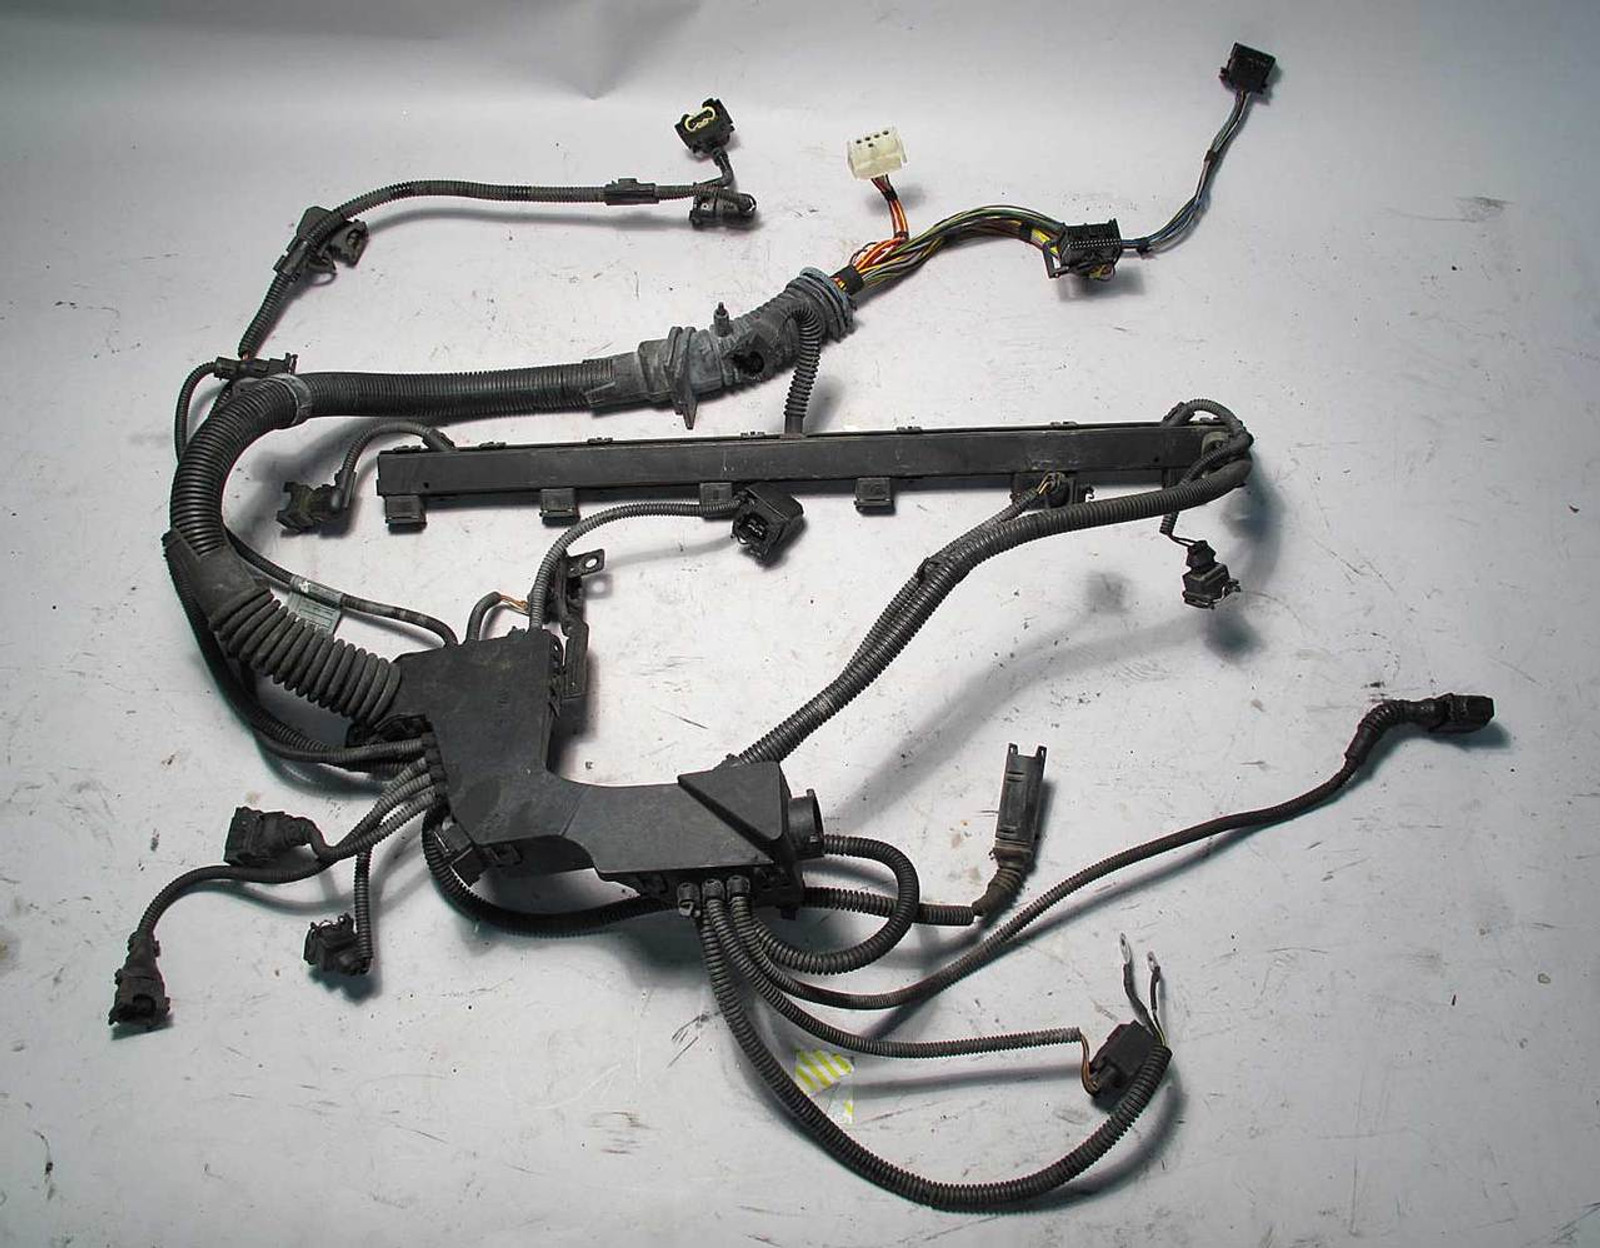 bmw e46 3 series m54 engine wiring harness complete 03 03 2003 2006 used oem BMW E46 Temp Wiring Harness